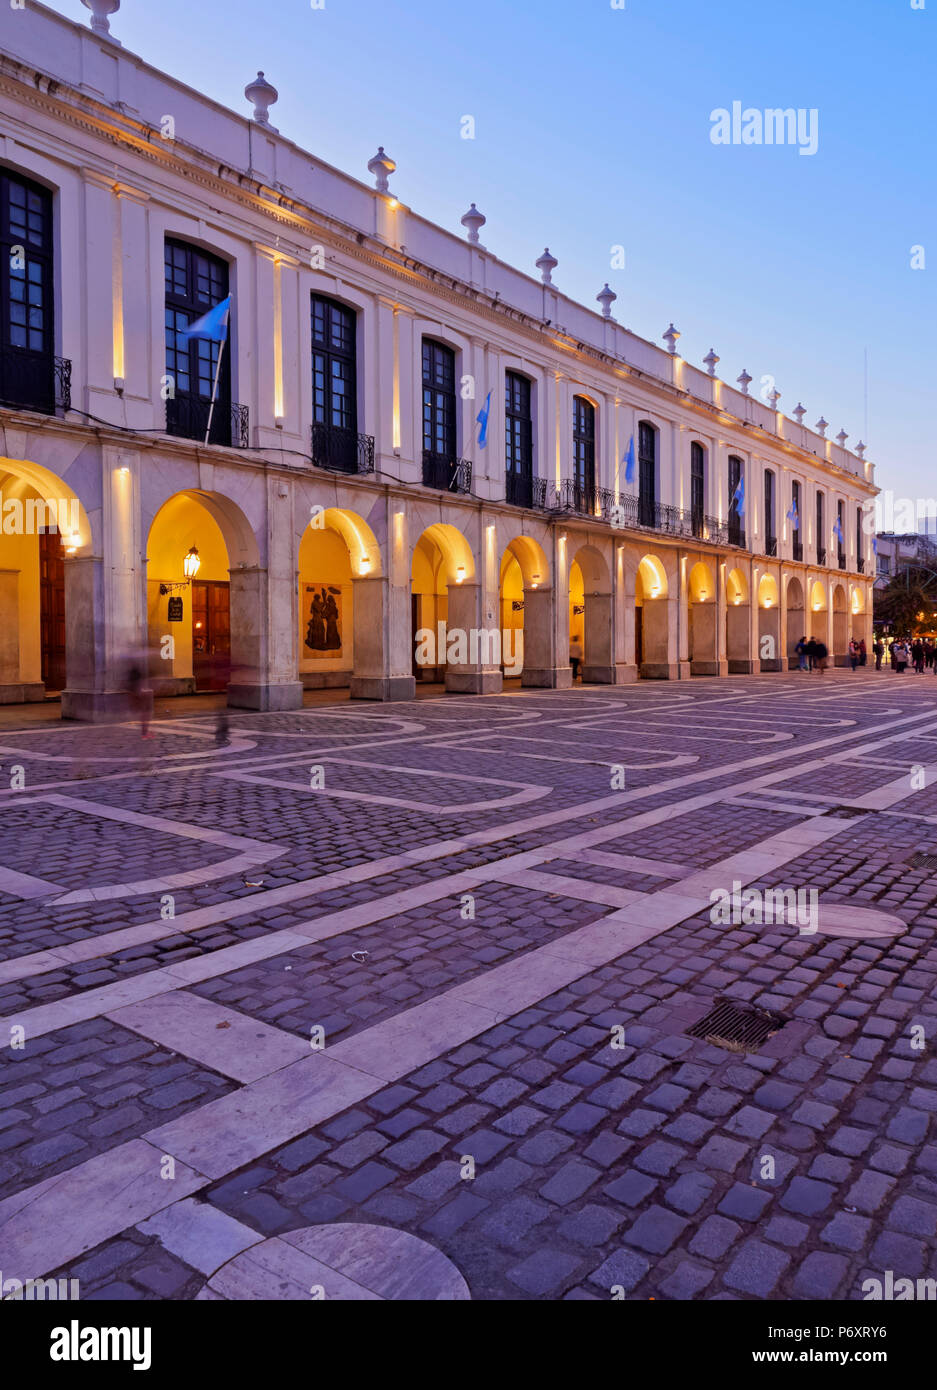 Argentina, Cordoba, Twilight view of the Cordoba Cabildo, colonial town hall. - Stock Image